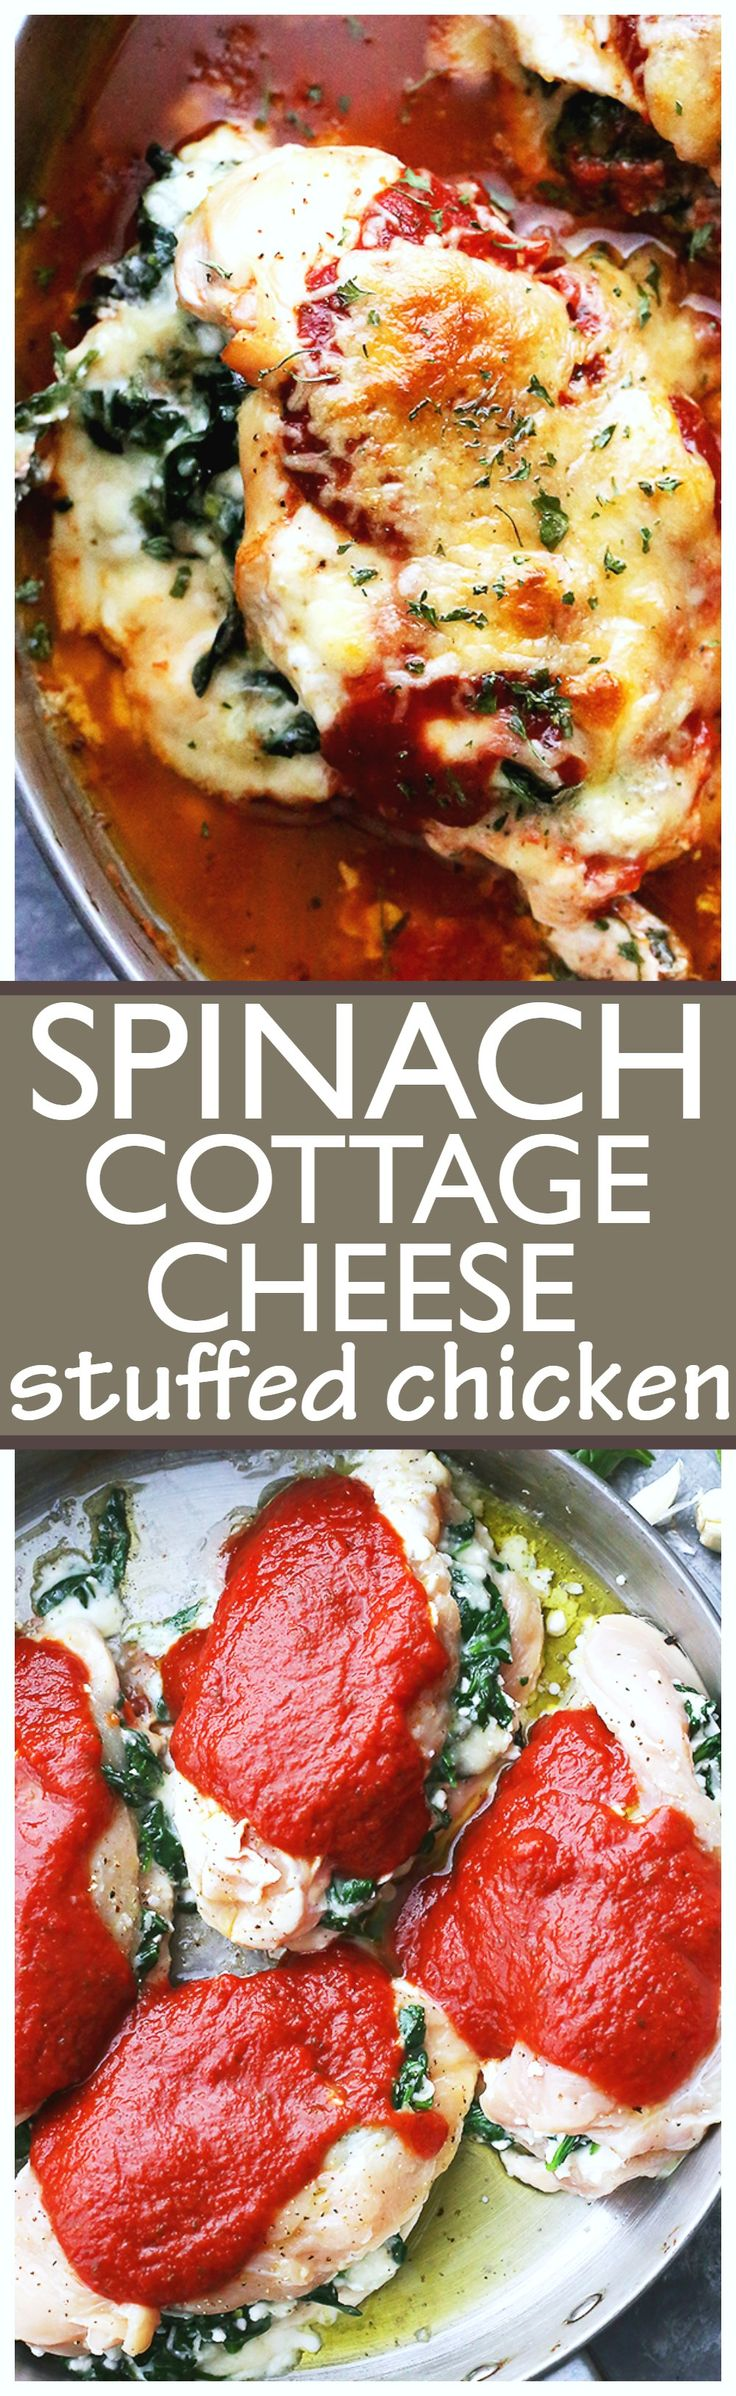 Saucy Spinach and Cottage Cheese Stuffed Chicken - Easy, delicious, yet healthy stuffed chicken breasts with spinach and cottage cheese, all baked in a hot and bubbly pasta sauce.